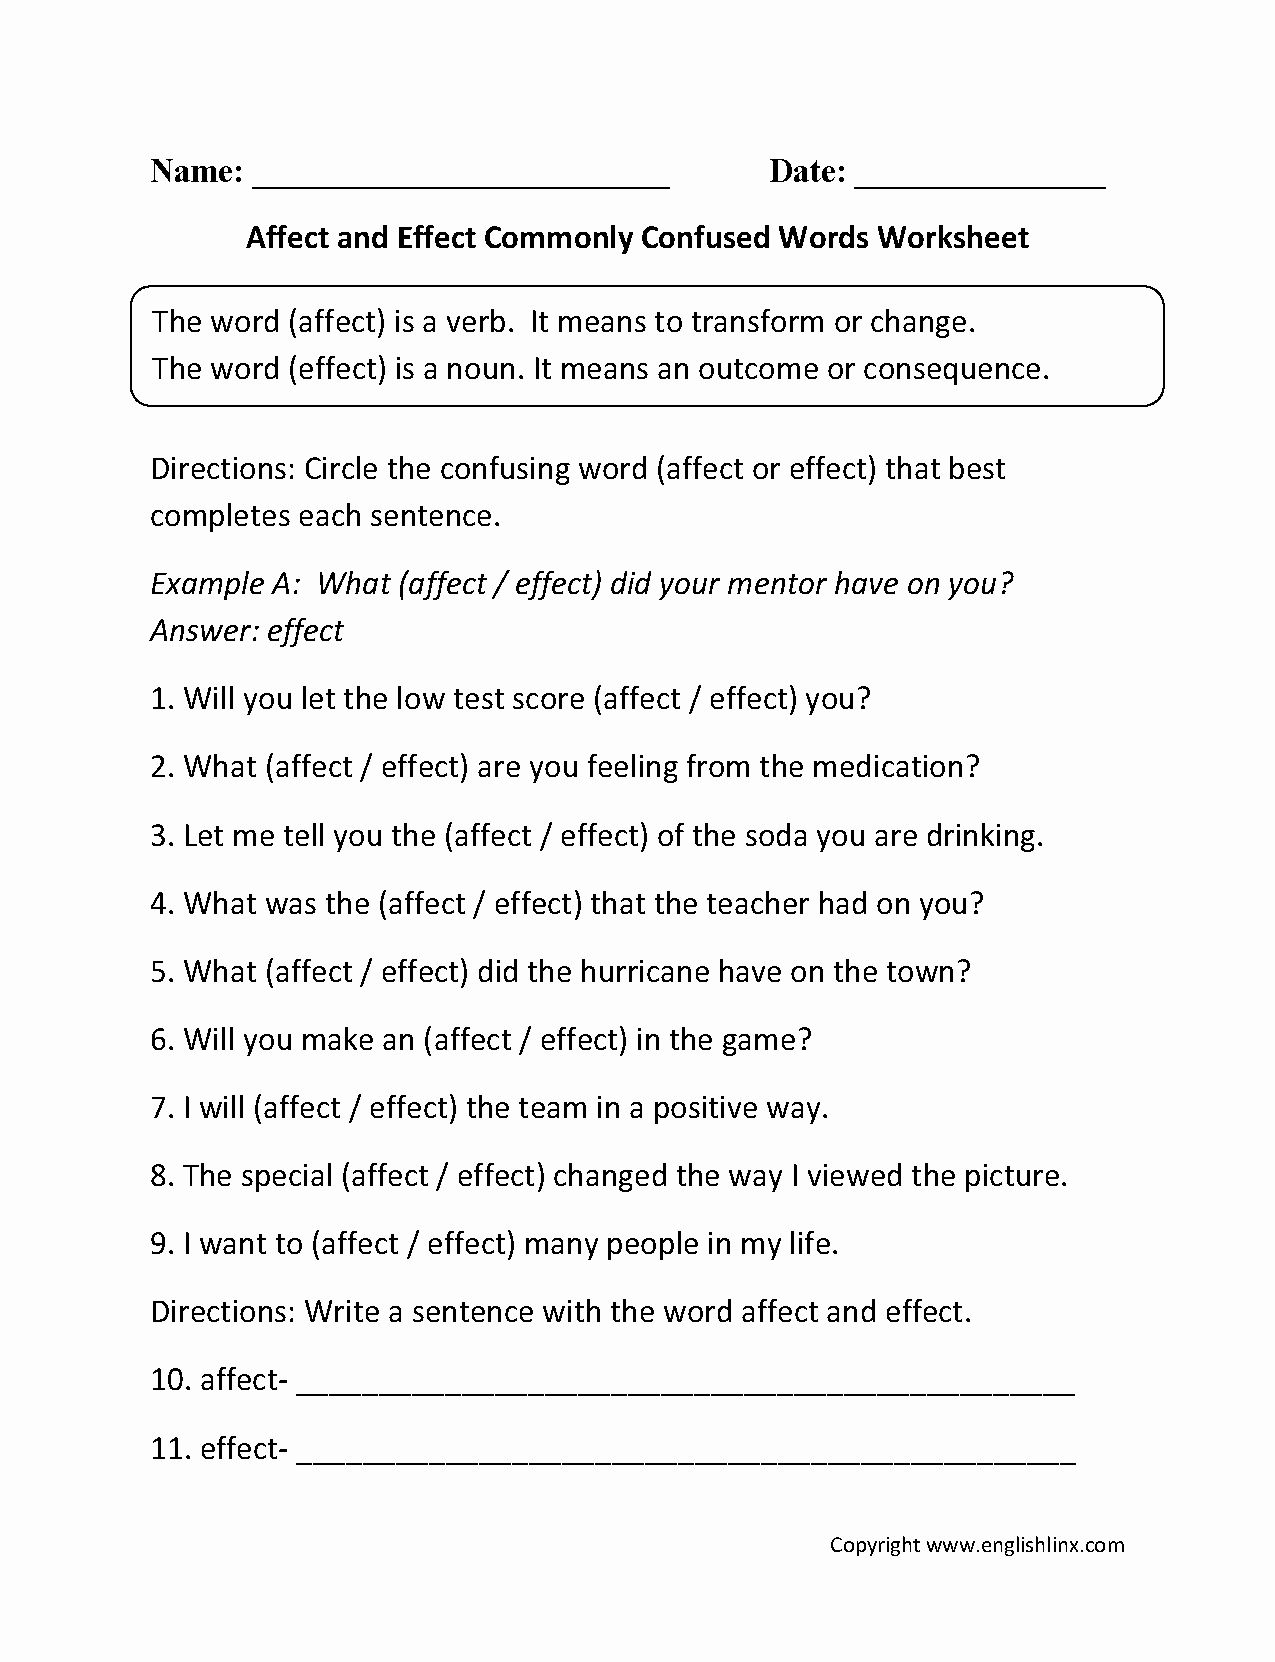 Affect Vs Effect Worksheet Lovely Affect And Effect Monly